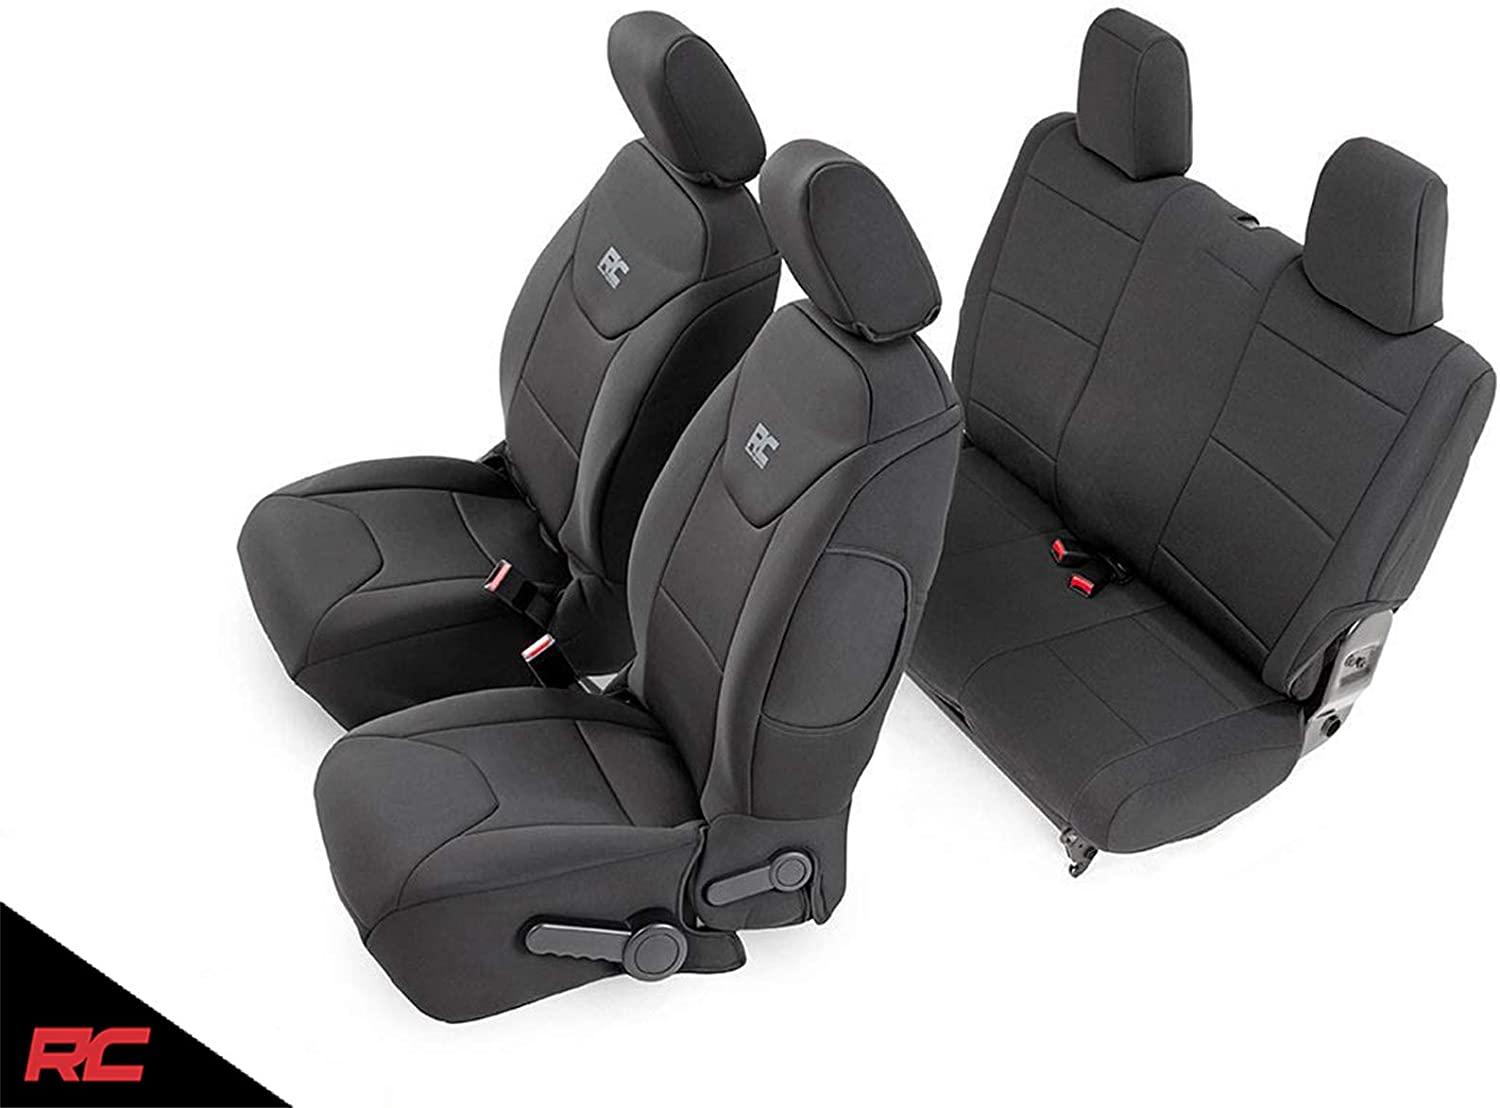 Jeep Wrangler Seat Covers >> Rough Country 91007 Black Neoprene Seat Cover Front Rear For 13 18 Jeep Wrangler Jk 2 Door